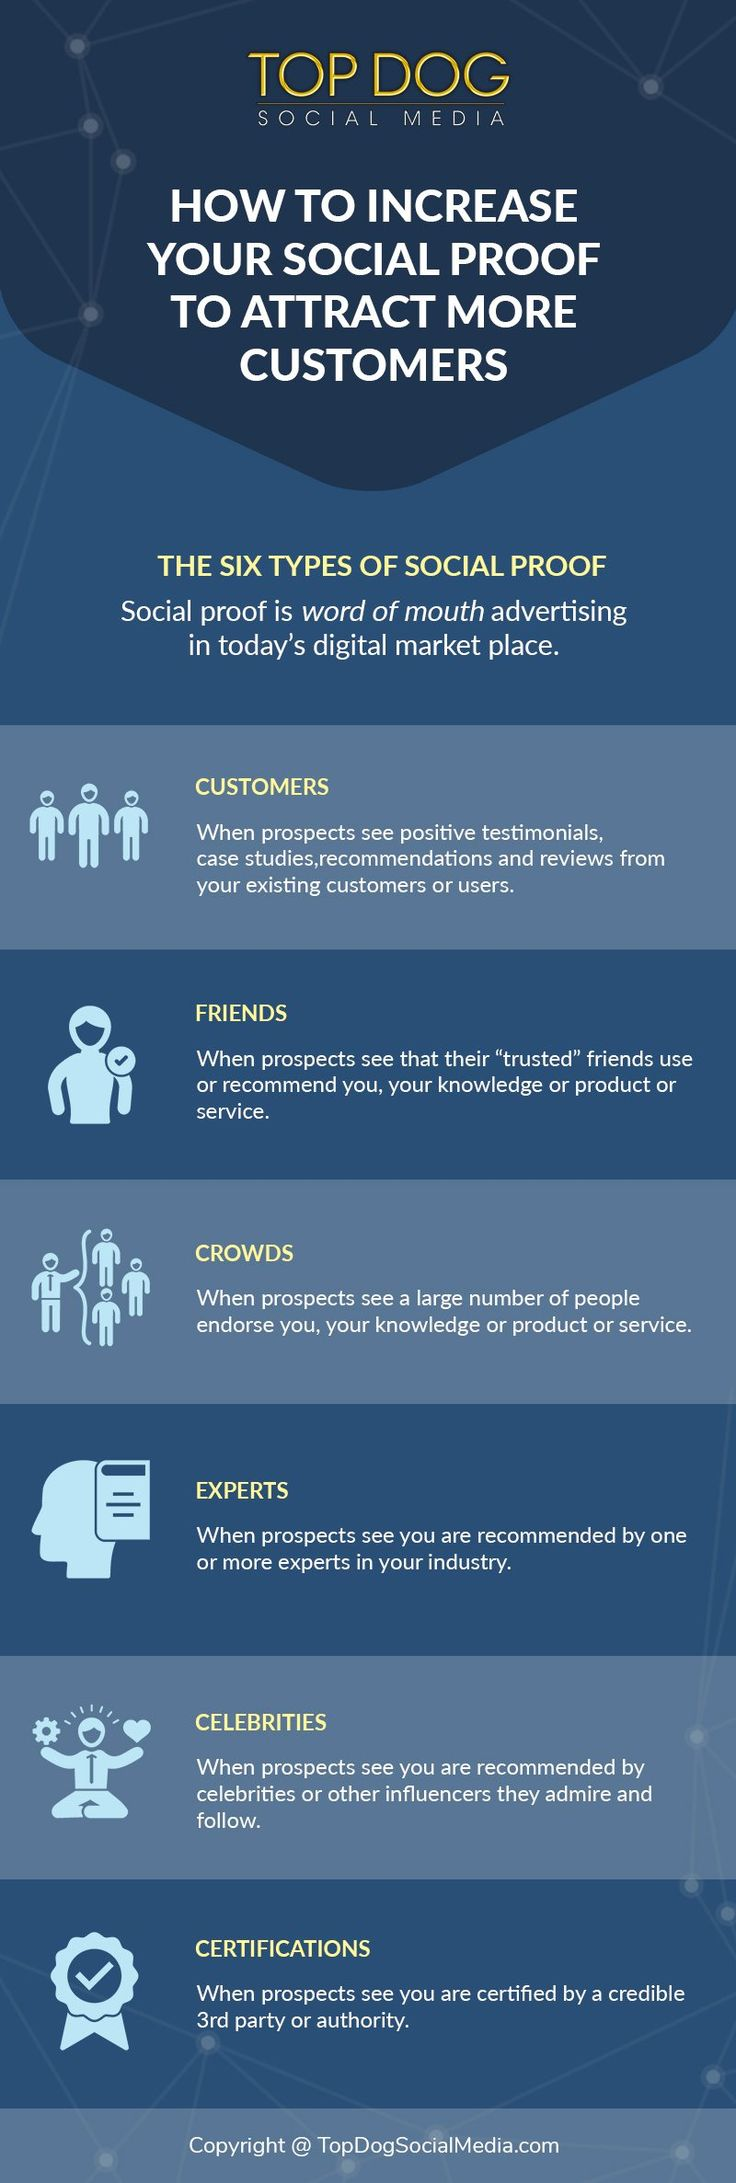 6 Types of Social Proof to Convince Website Visitors to Buy from You [Infographic]